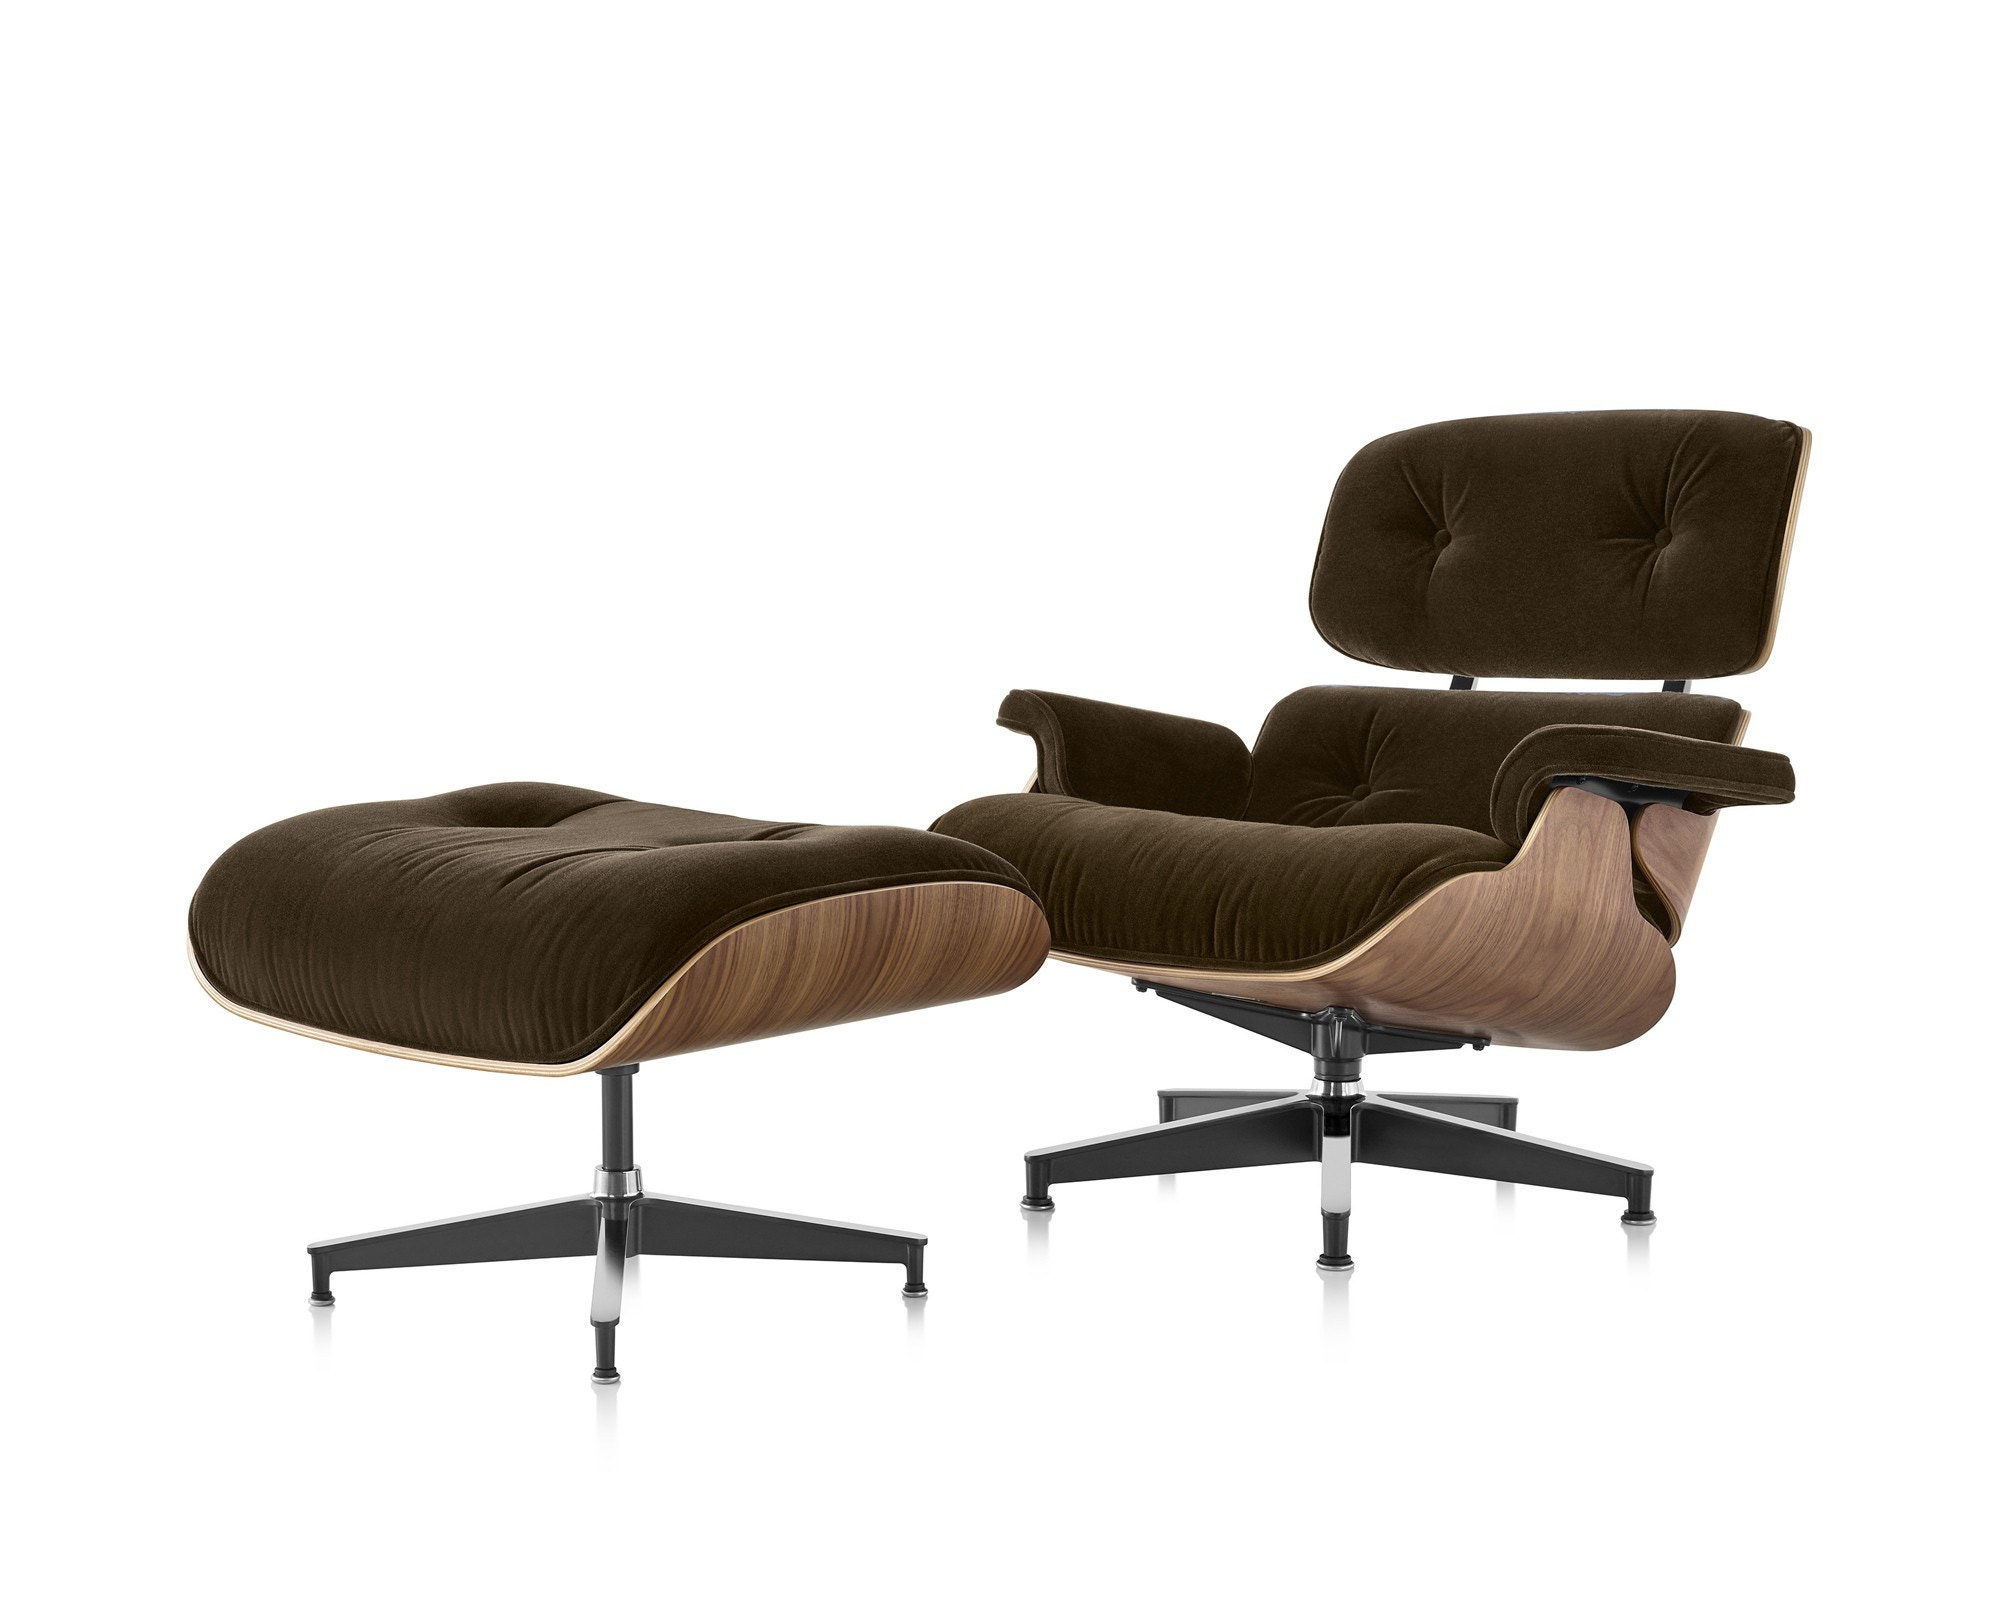 Herman Miller Eames® Lounge Chair and Ottoman in Mohair Supreme